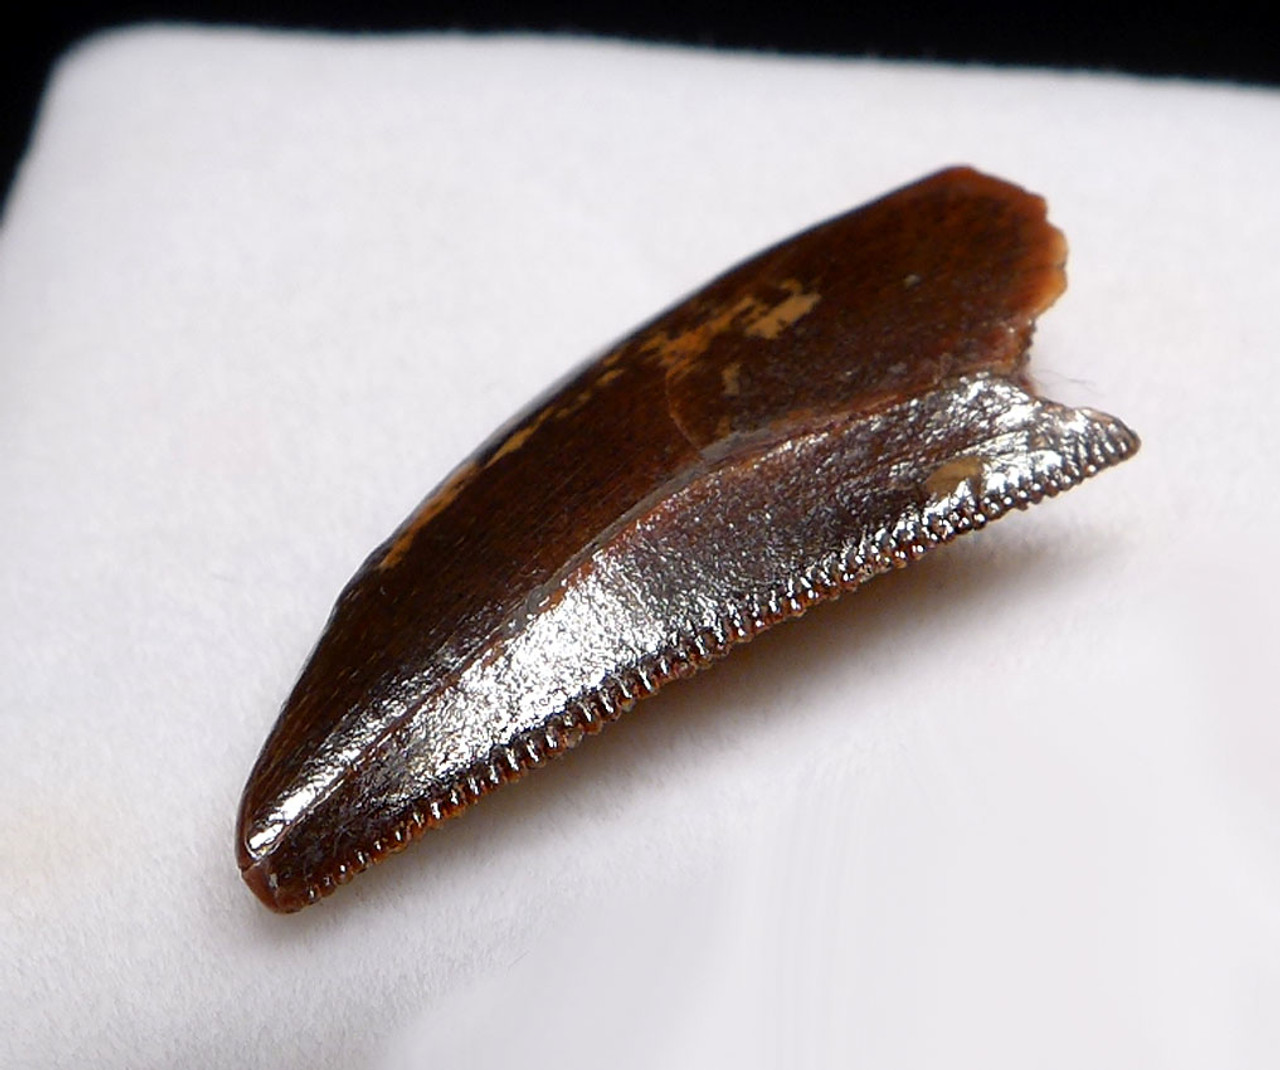 RAPTOR TOOTH FROM A LARGE DROMAEOSAUR DINOSAUR  *DT6-332